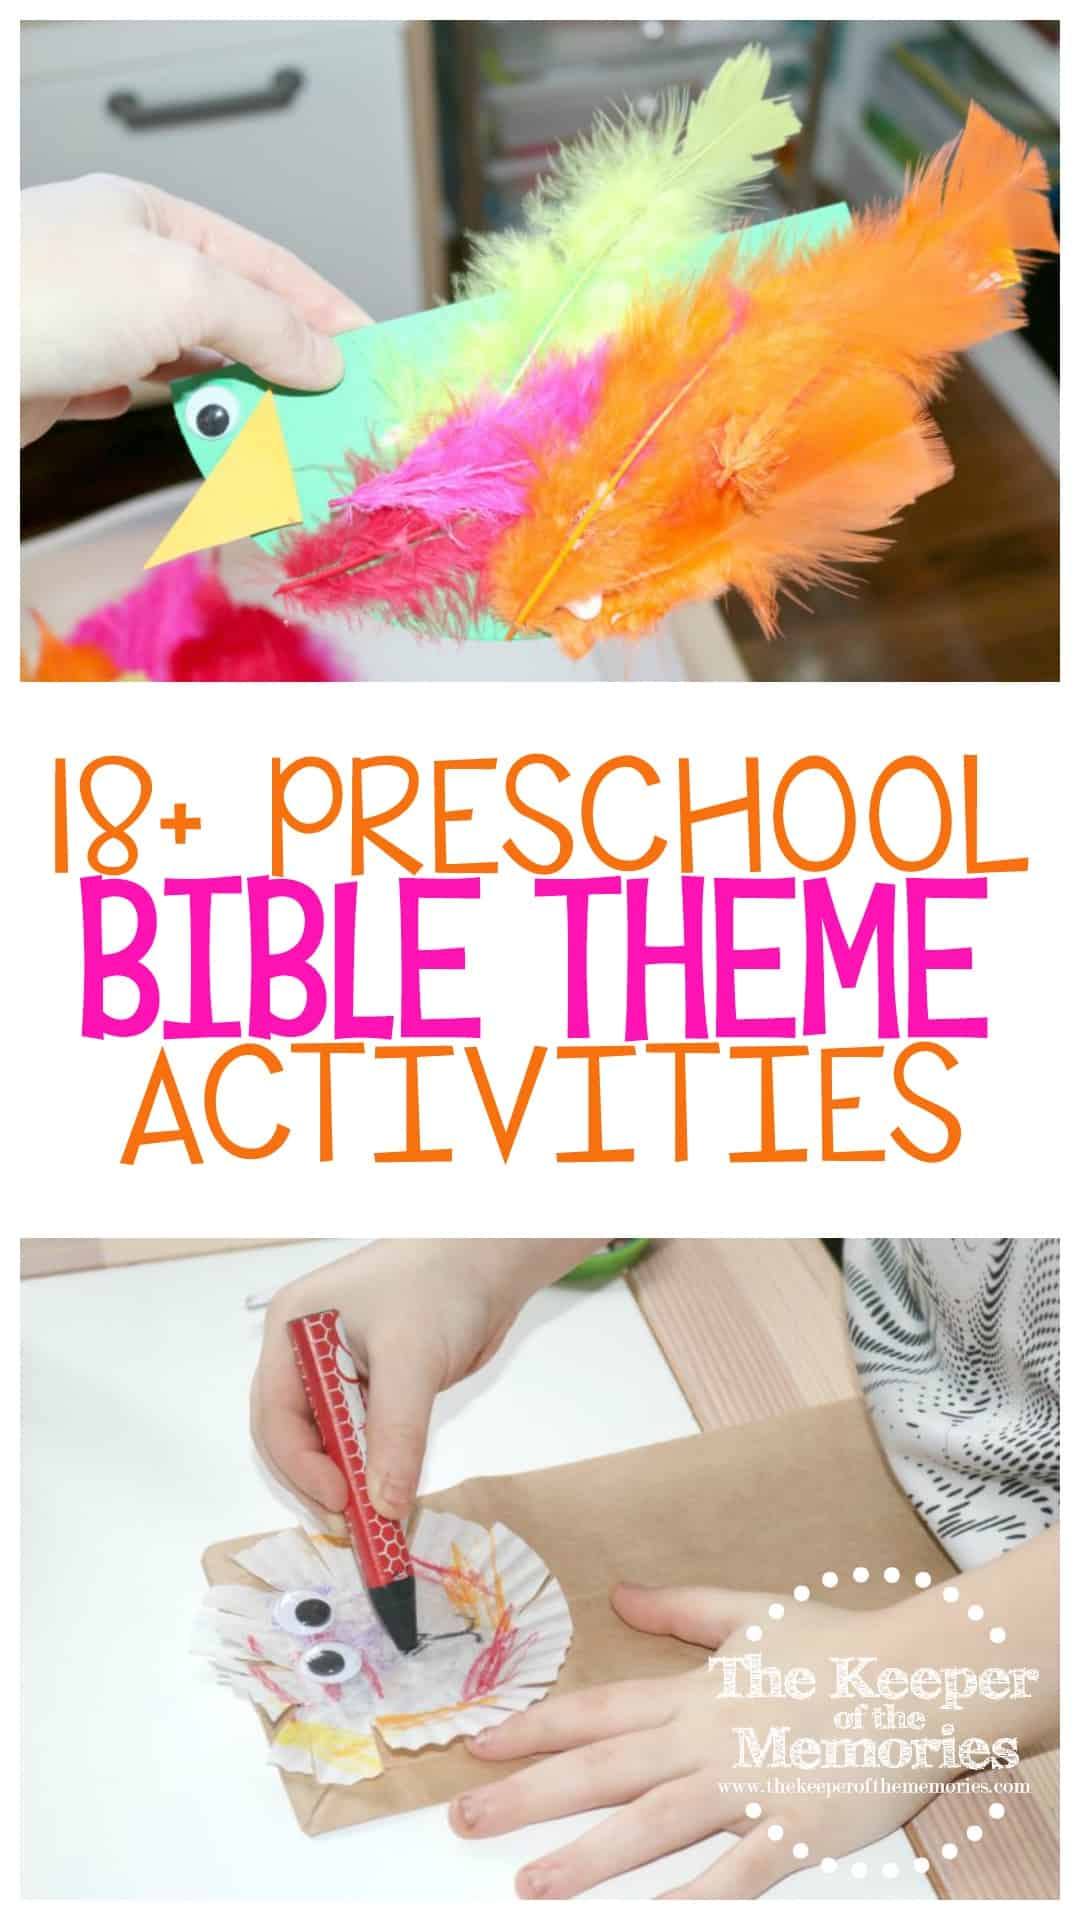 18+ Bible Preschool Monthly Theme Crafts & Activities